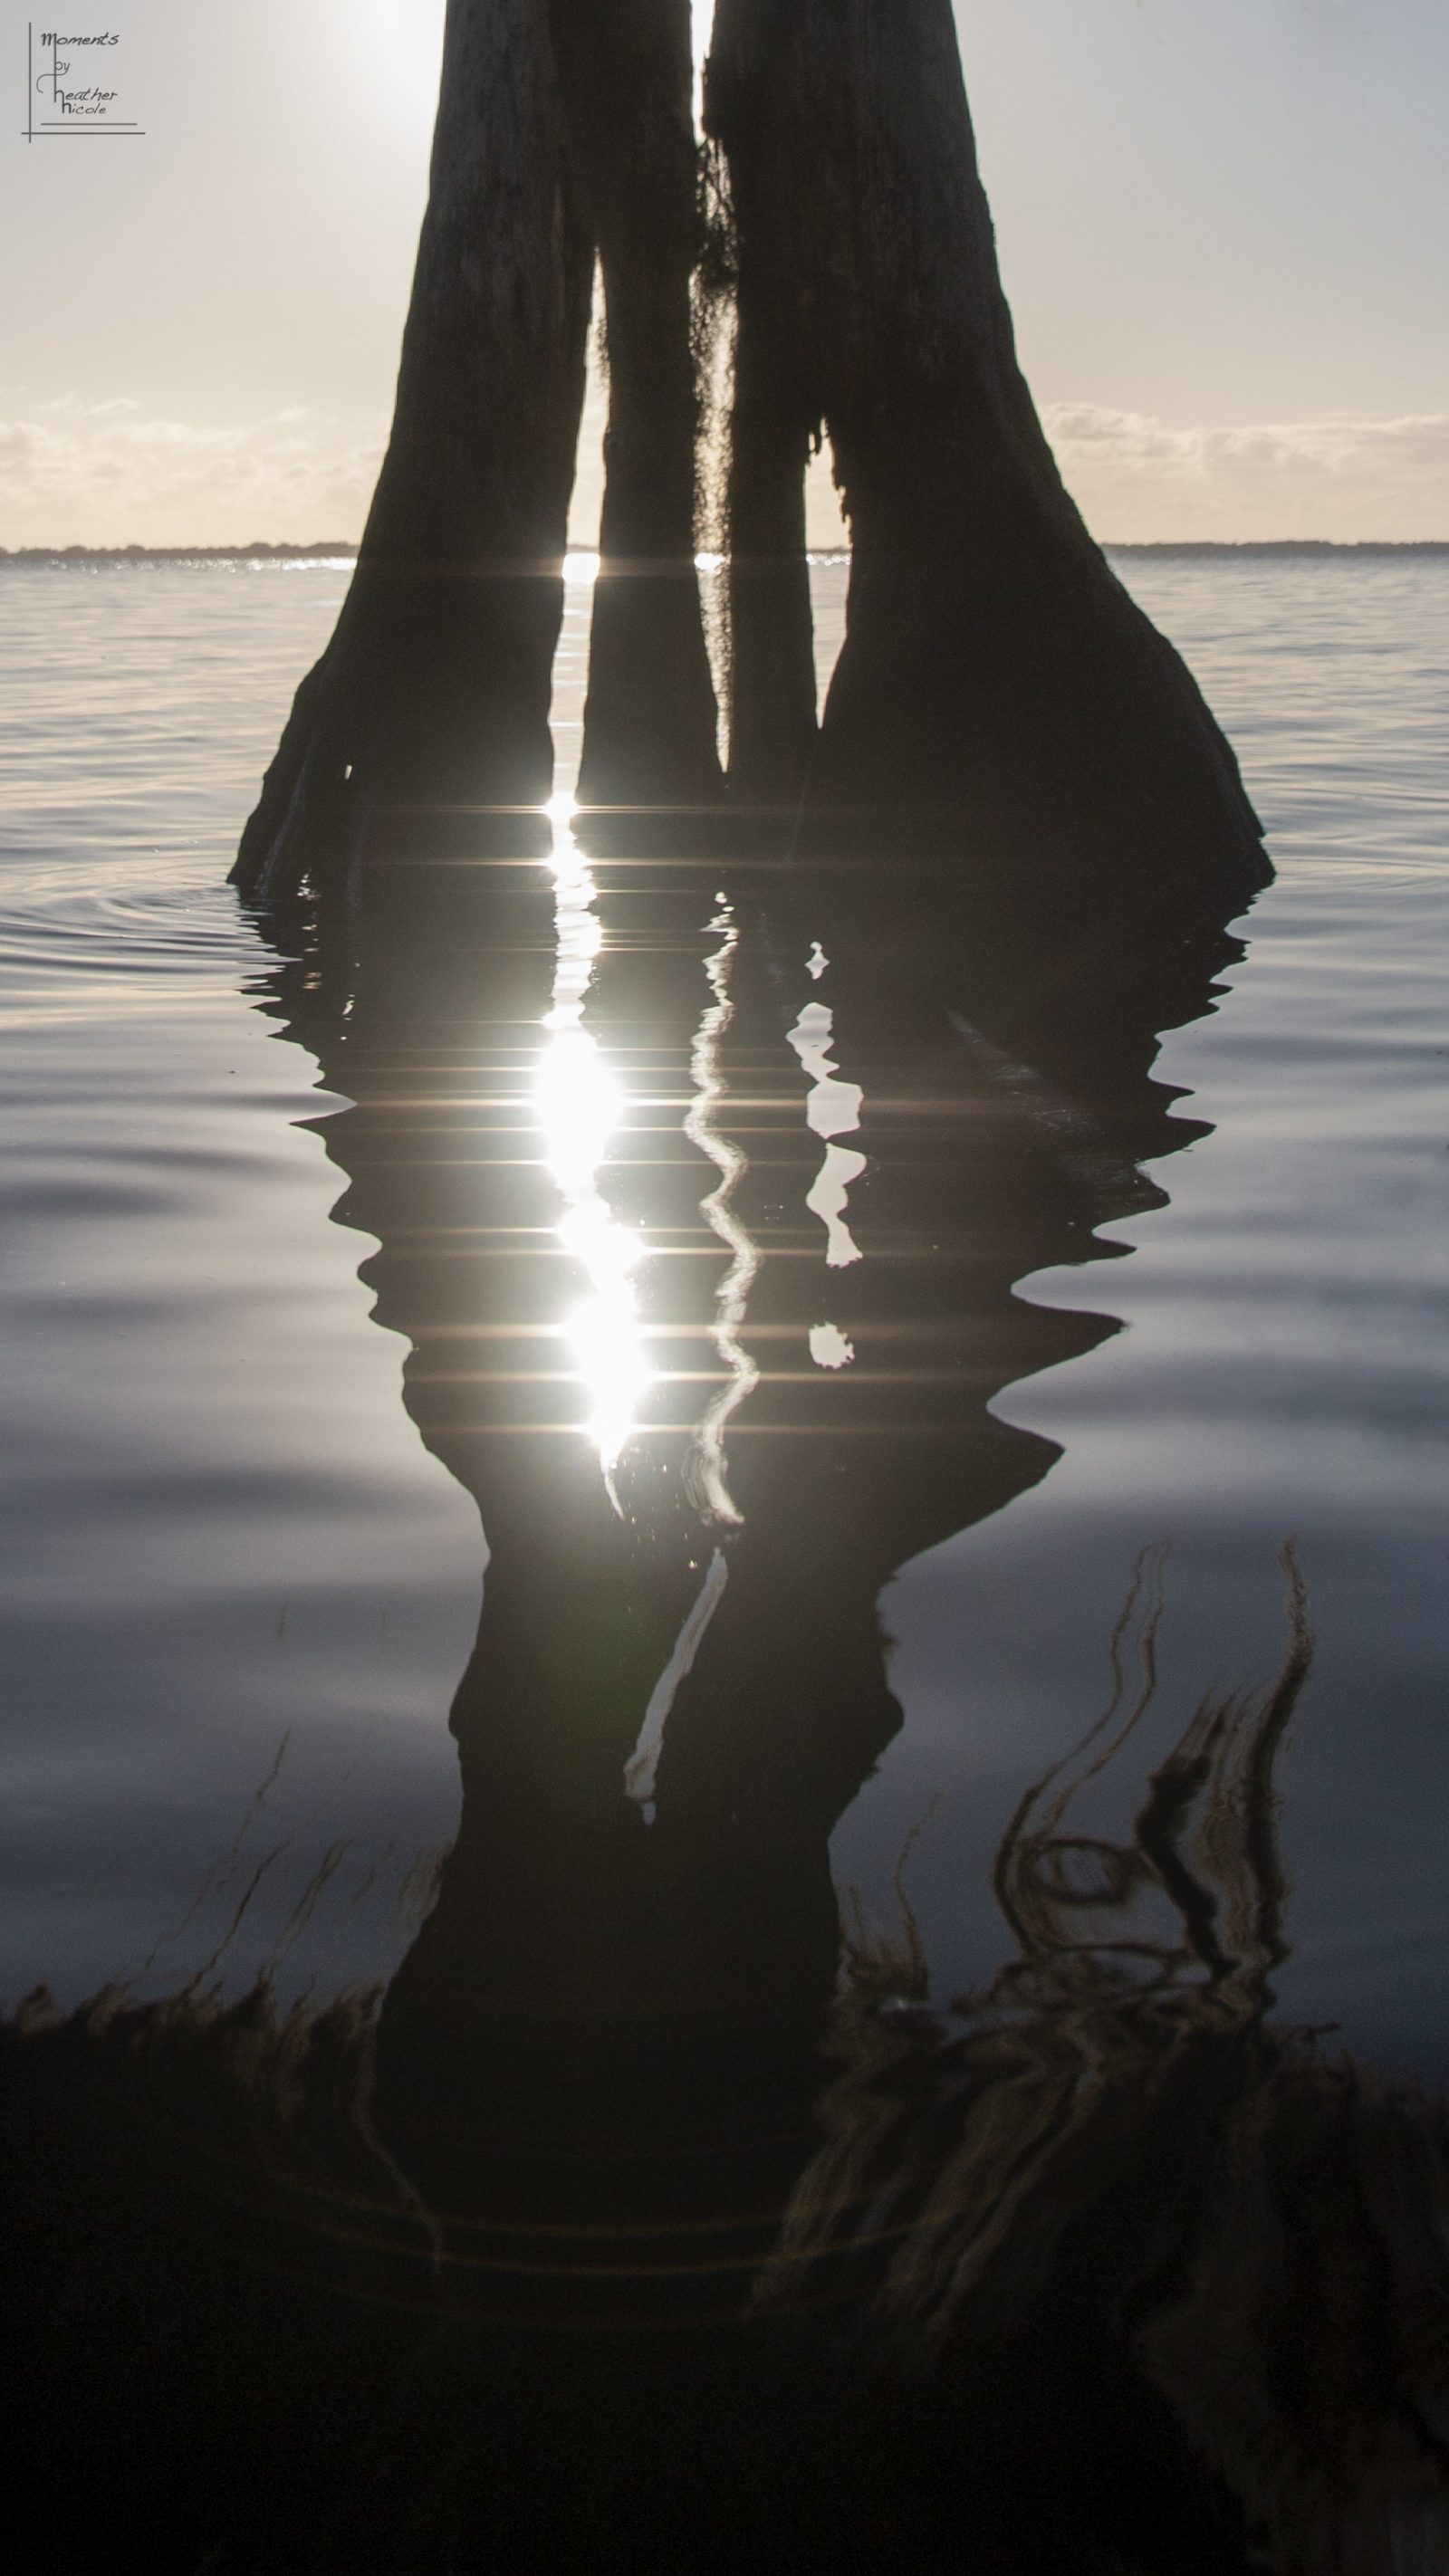 Refracted Reflections